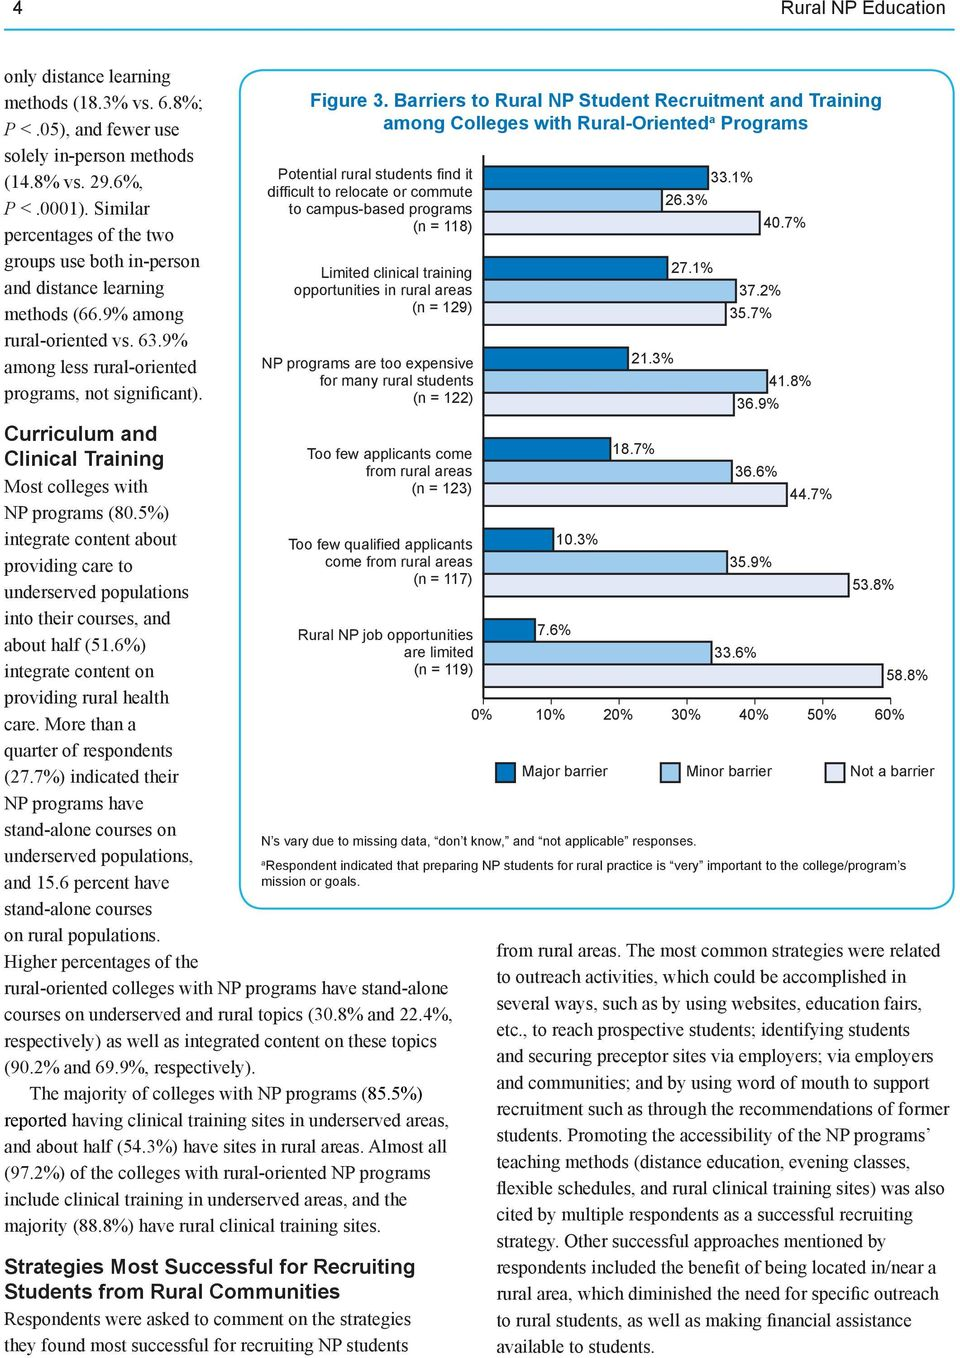 Curriculum and Clinical Training Most colleges with NP programs (80.5%) integrate content about providing care to underserved populations into their courses, and about half (51.